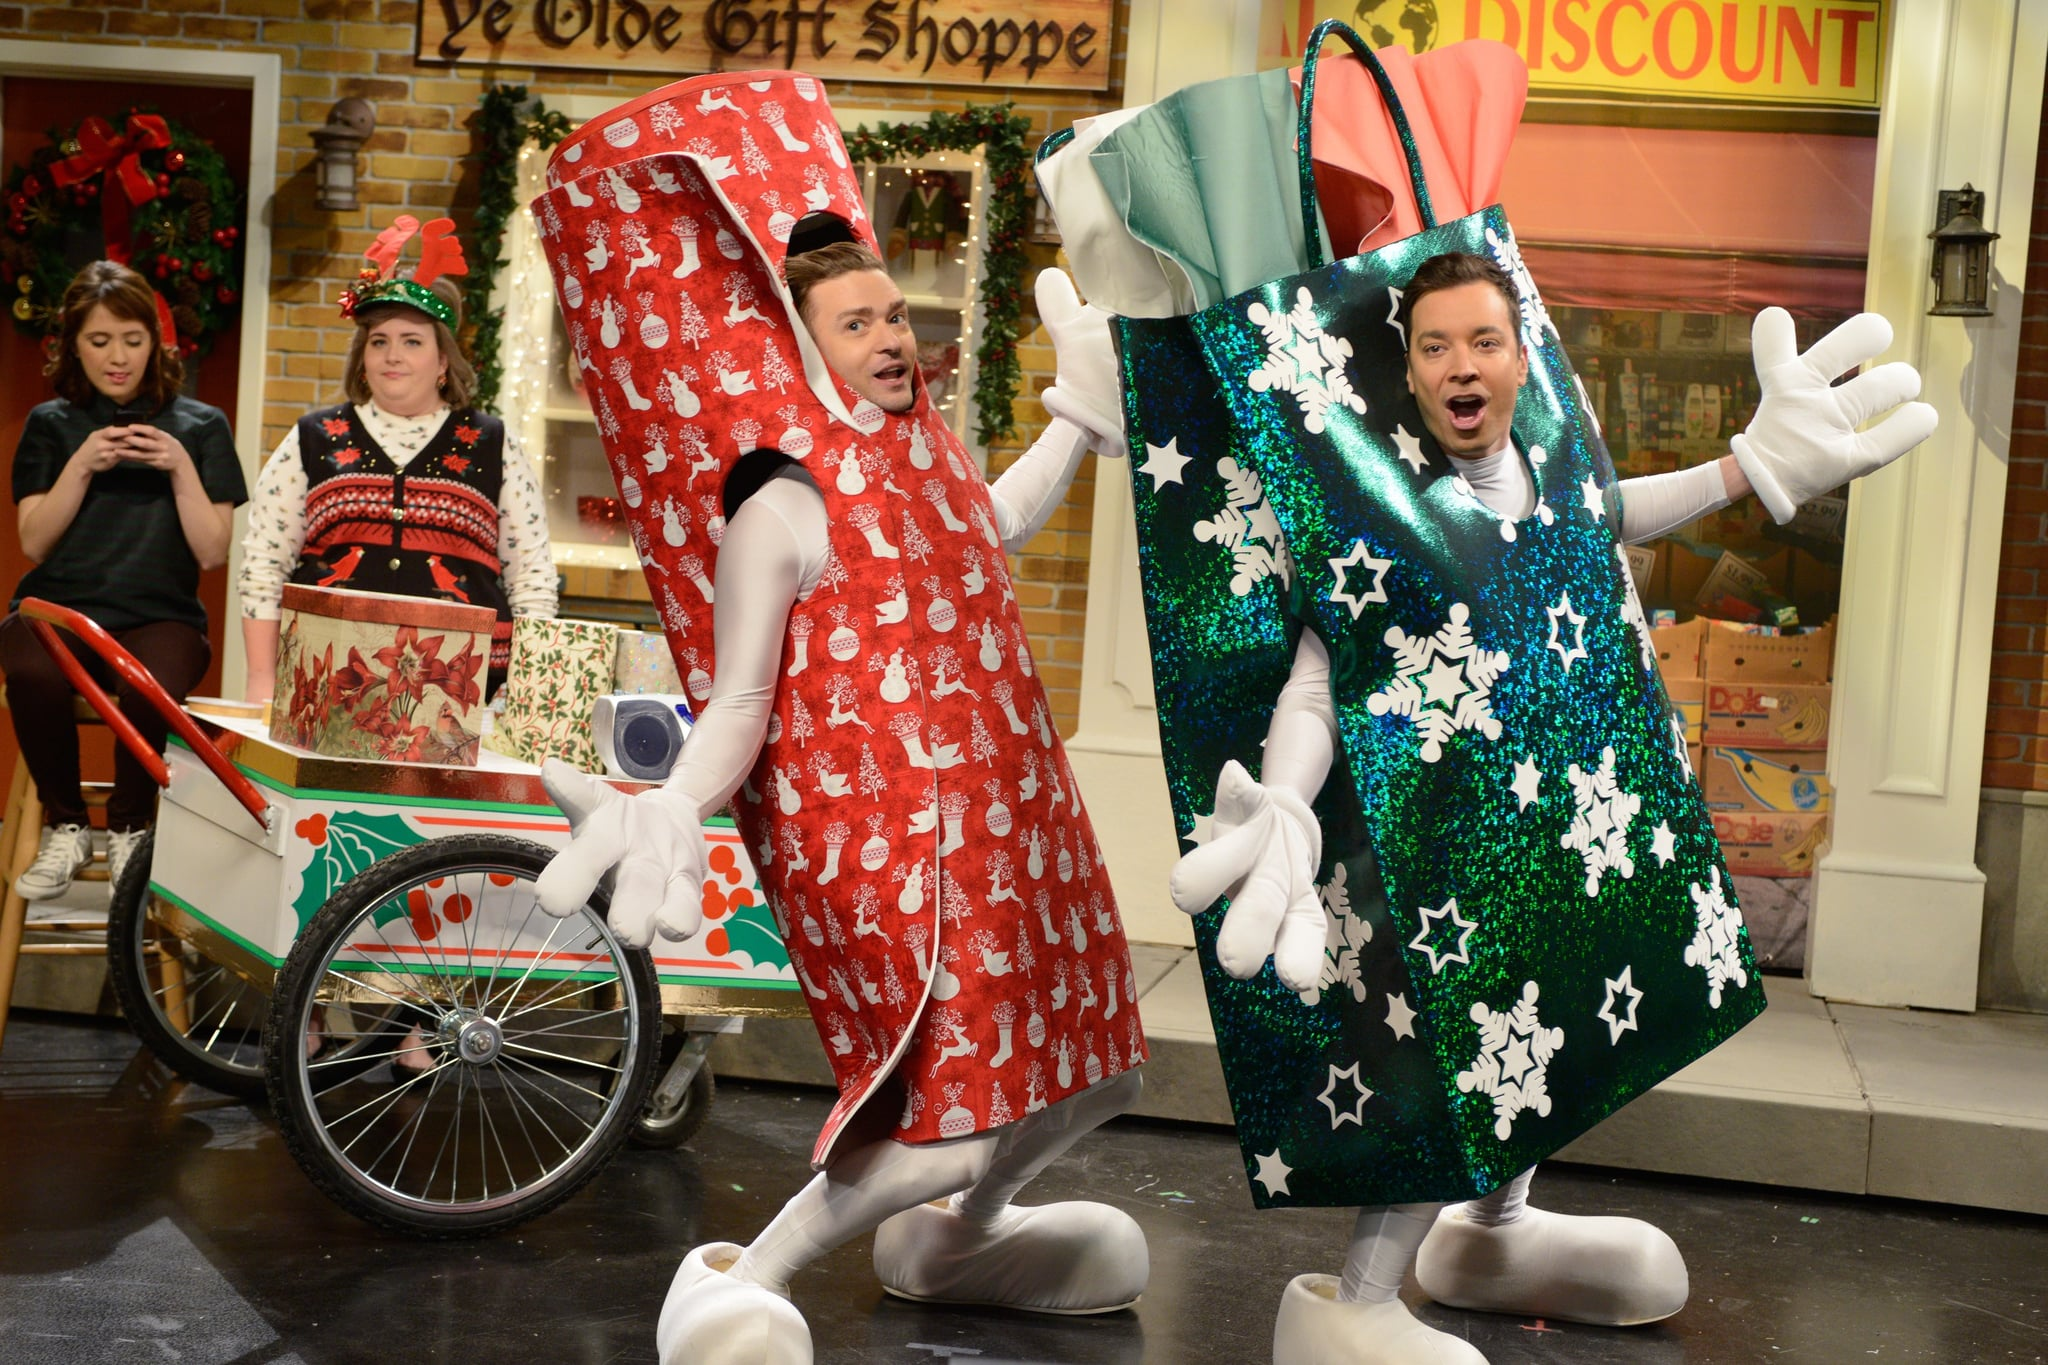 Snl Christmas Special.Saturday Night Live Christmas Special Age 14 Dec Your